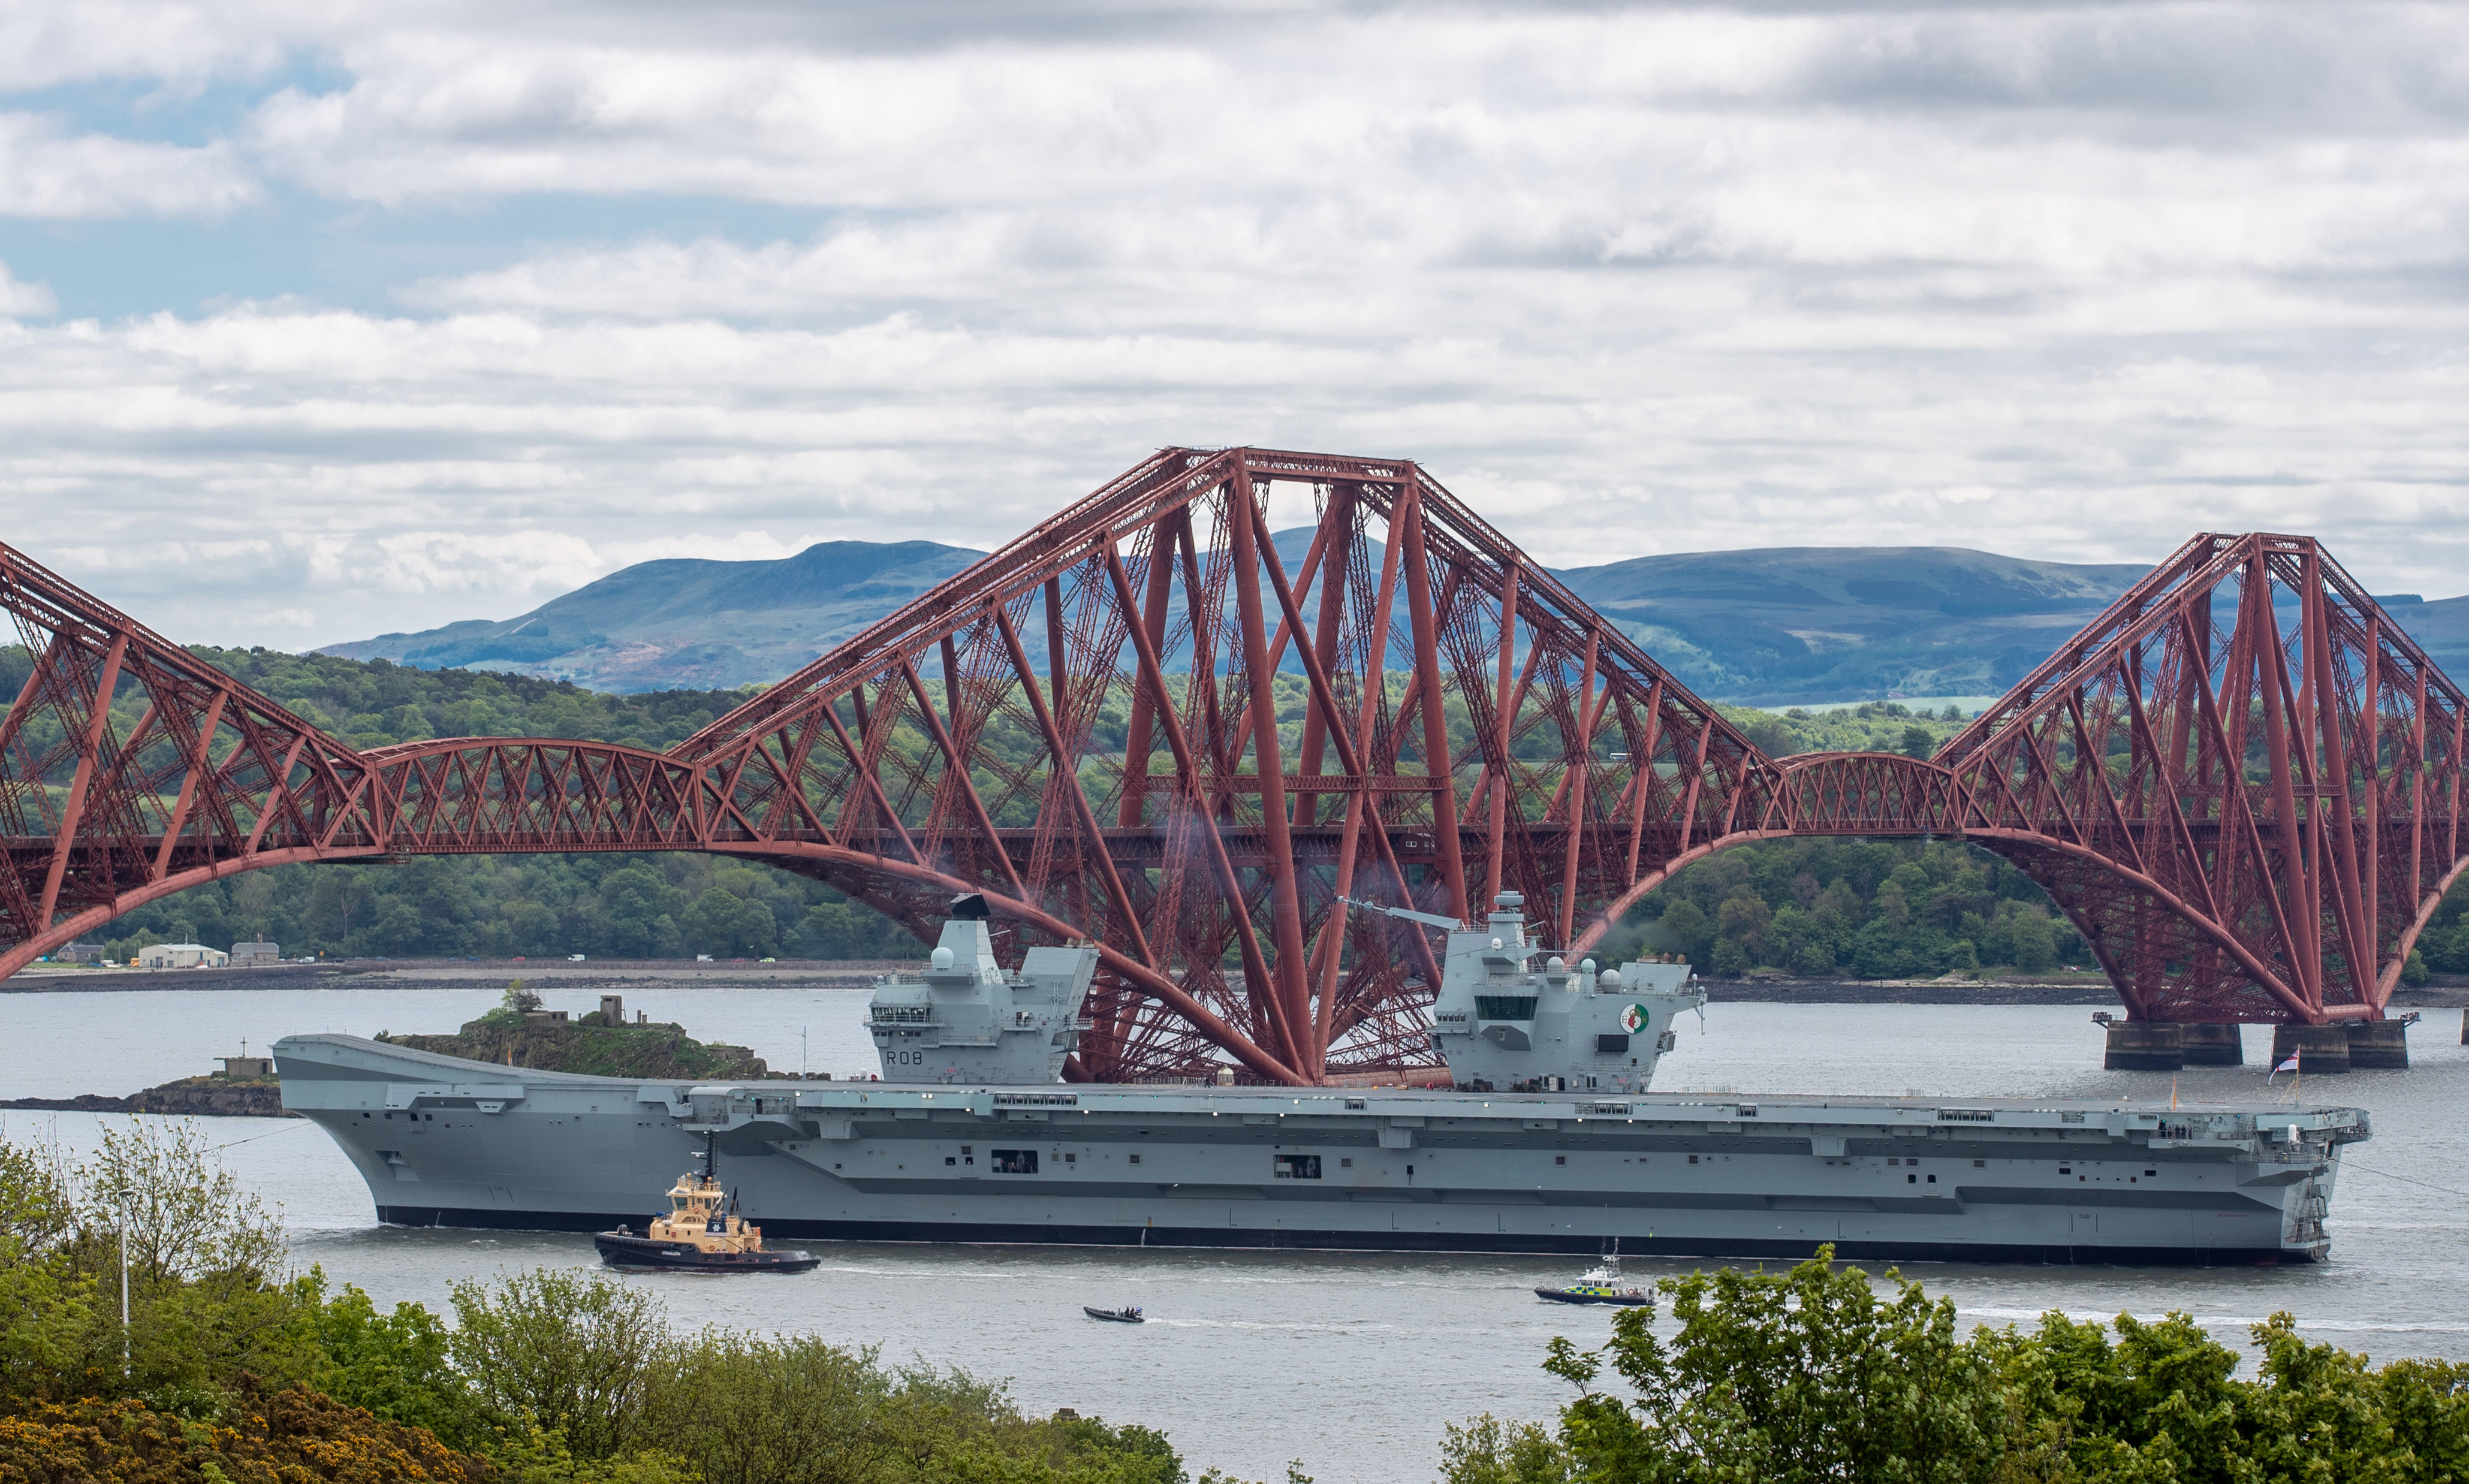 The HMS Queen Elizabeth sails under the Forth Bridges as she heads south from Rosyth, where she was built.